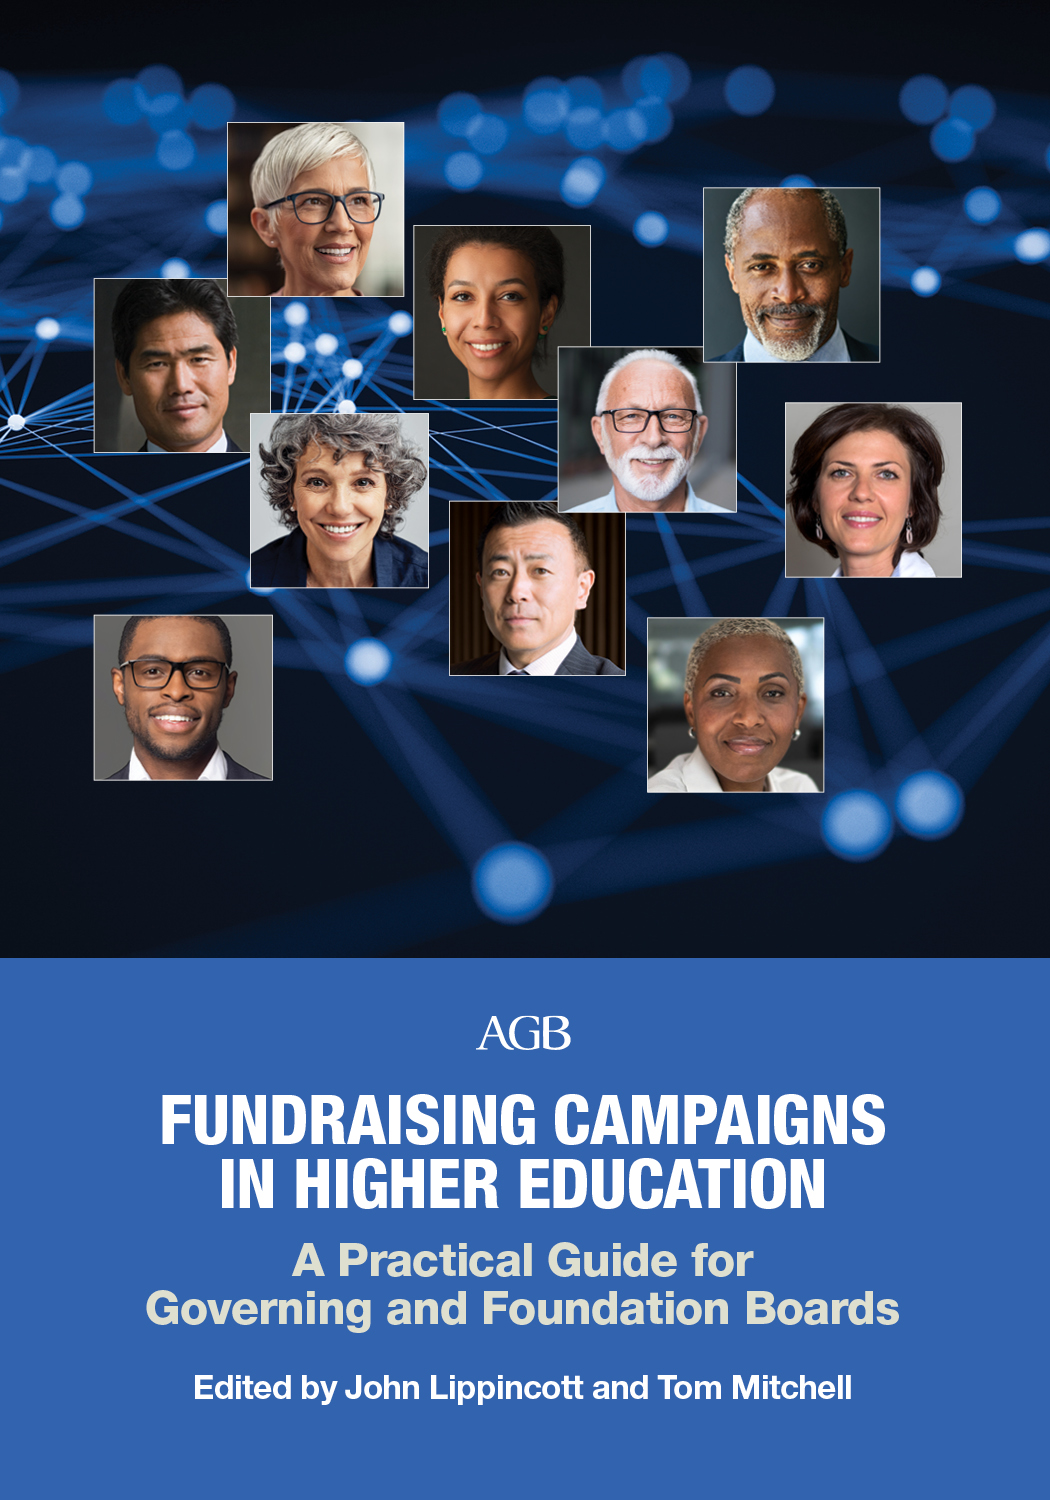 Fundraising Campaigns in Higher Education